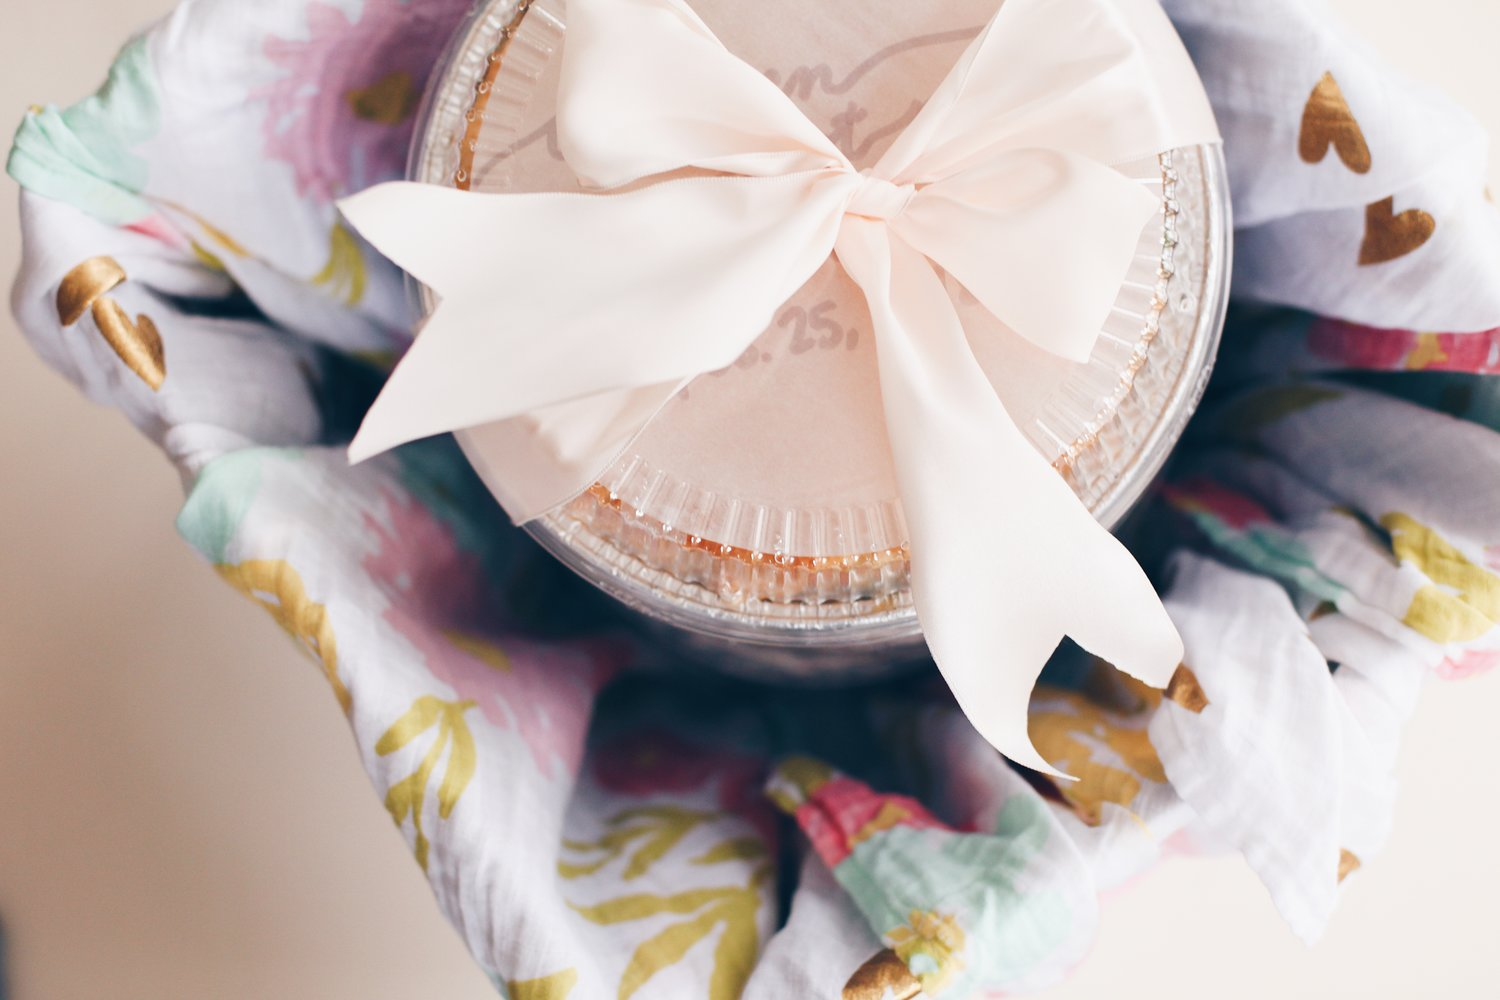 The Best Gift For New Moms by Sarah Lampley